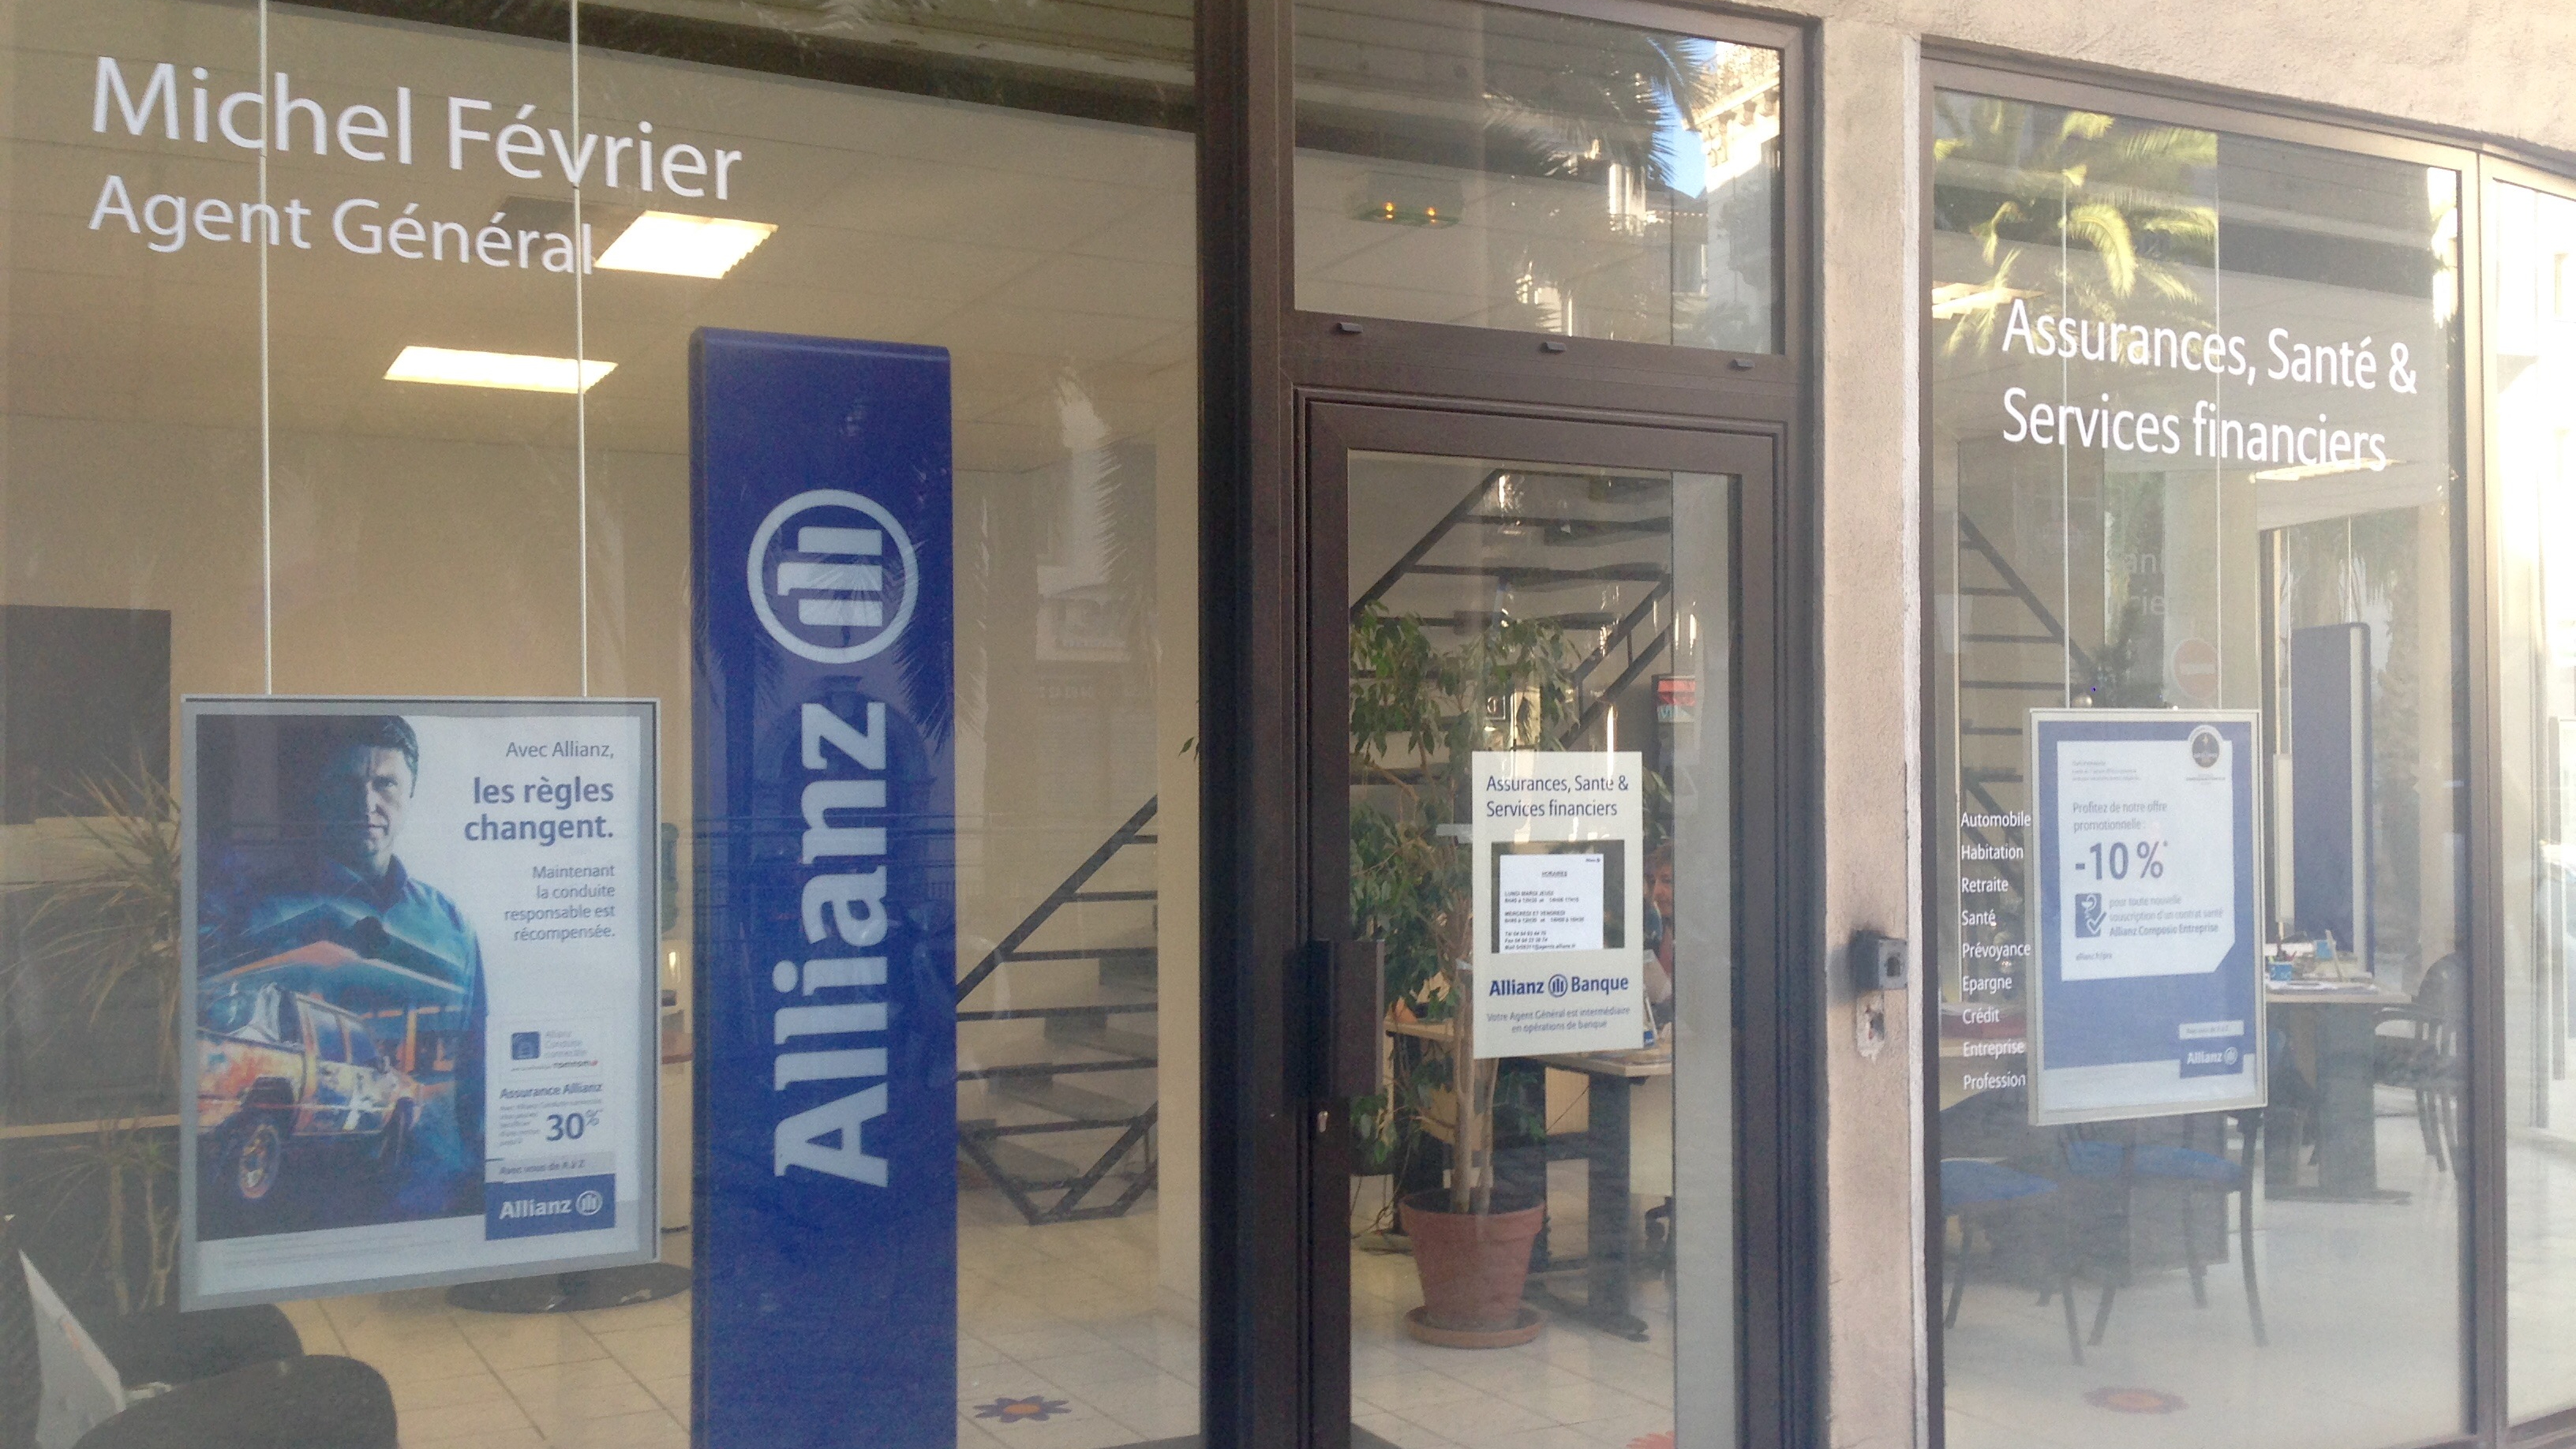 Allianz Toulon - Michel FEVRIER